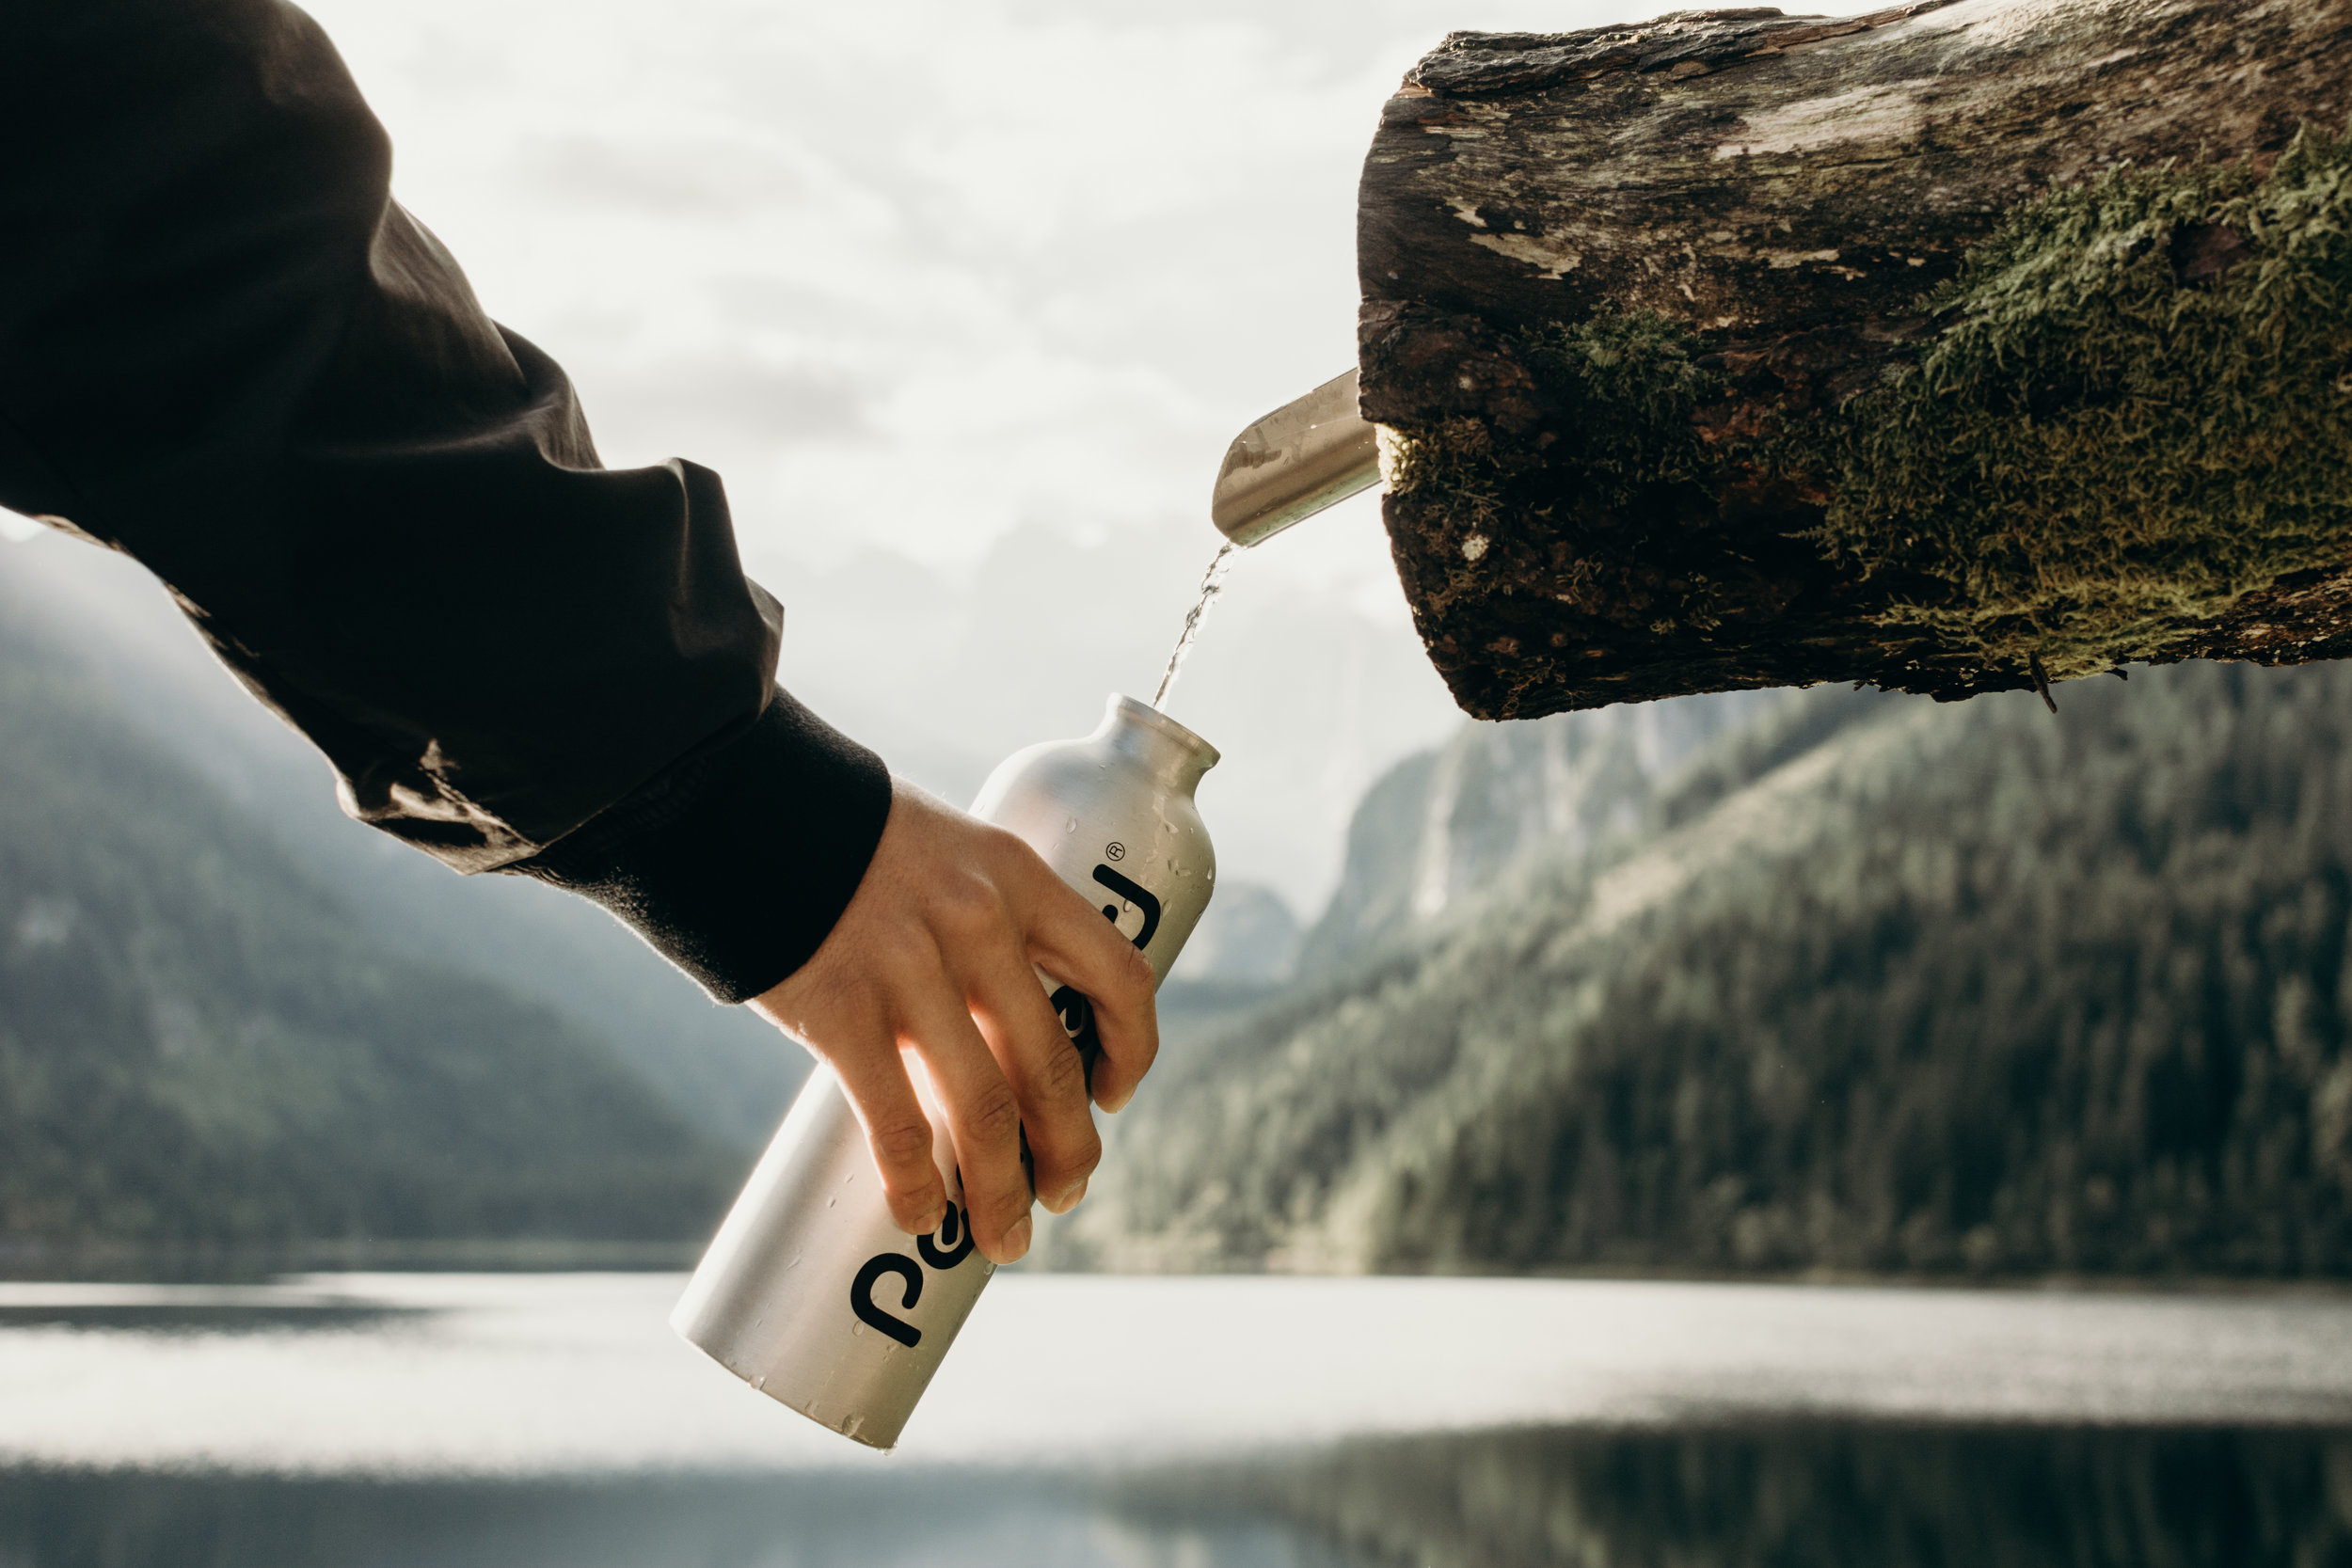 - Drinking more water is one easy step to becoming more healthy.